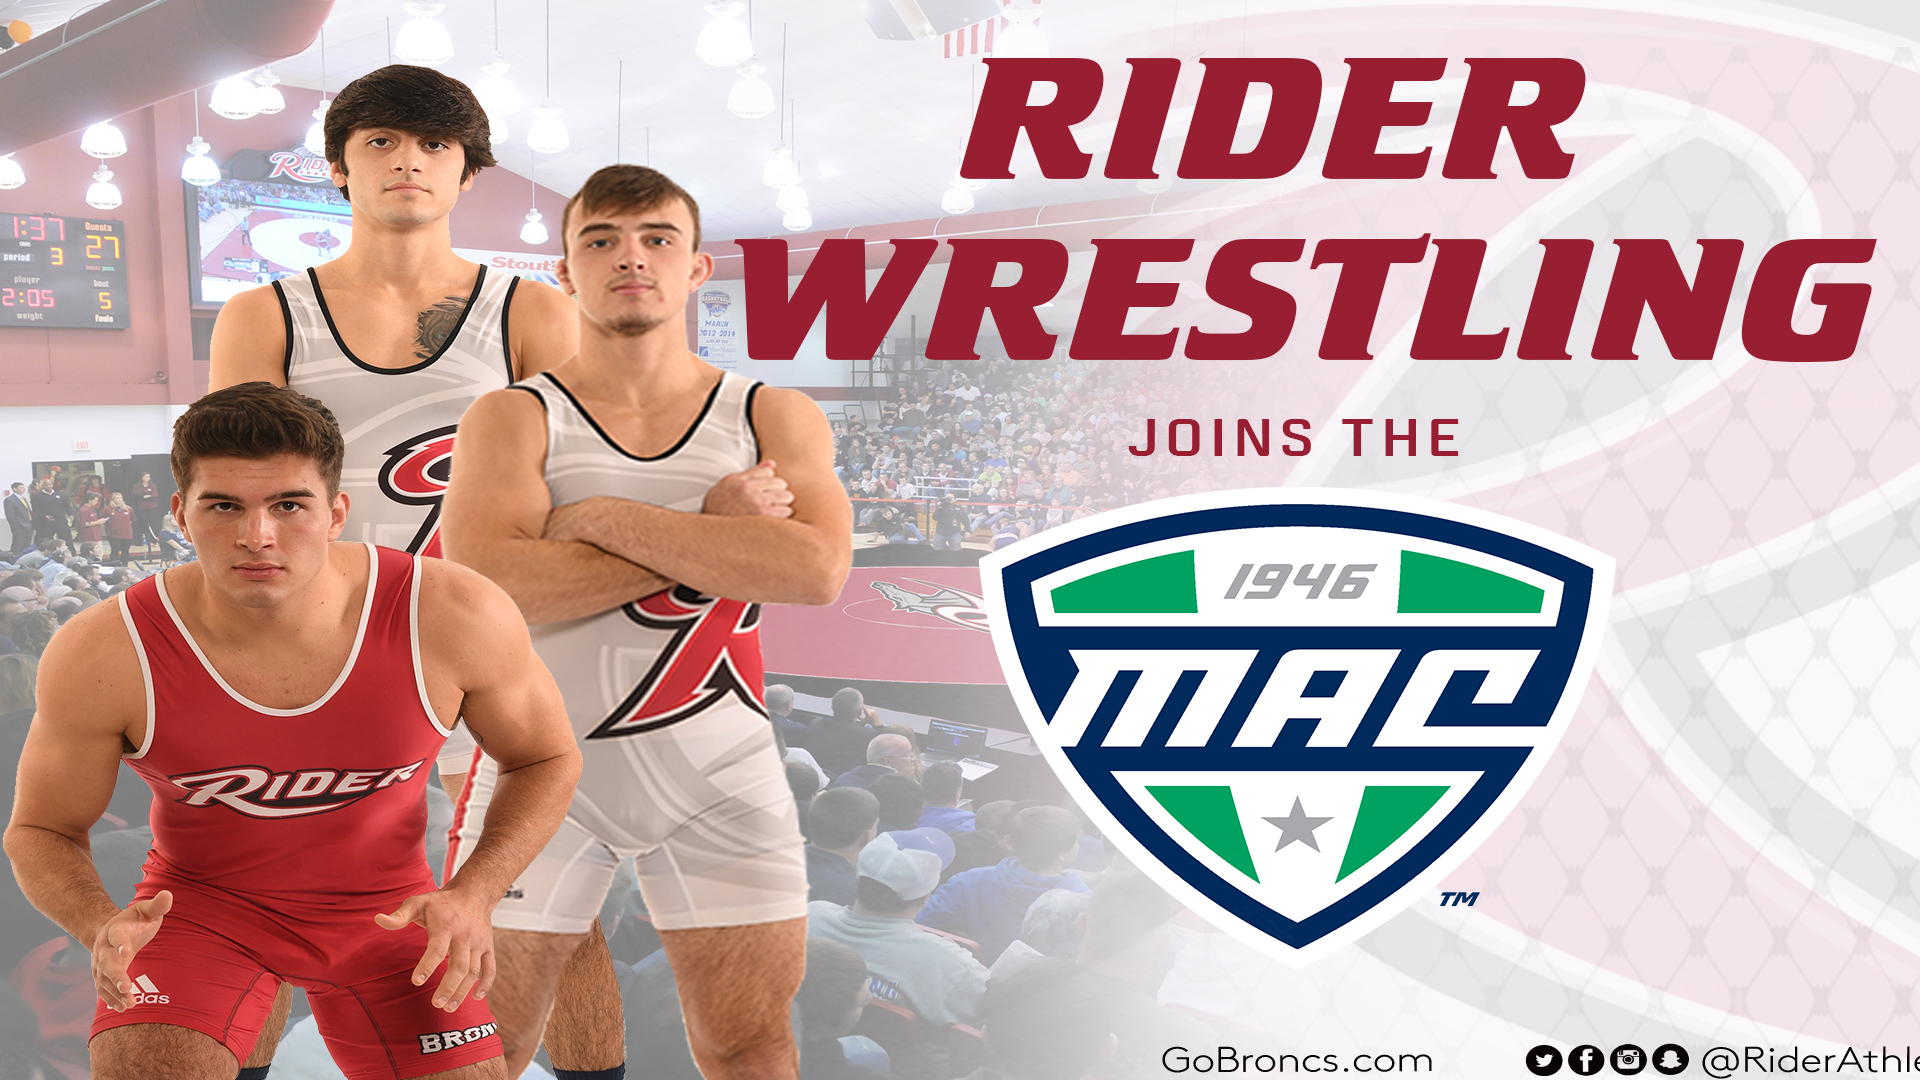 b29122e7715fbb Rider Wrestling Joins Mid-American Conference in 2019-20 - Rider ...